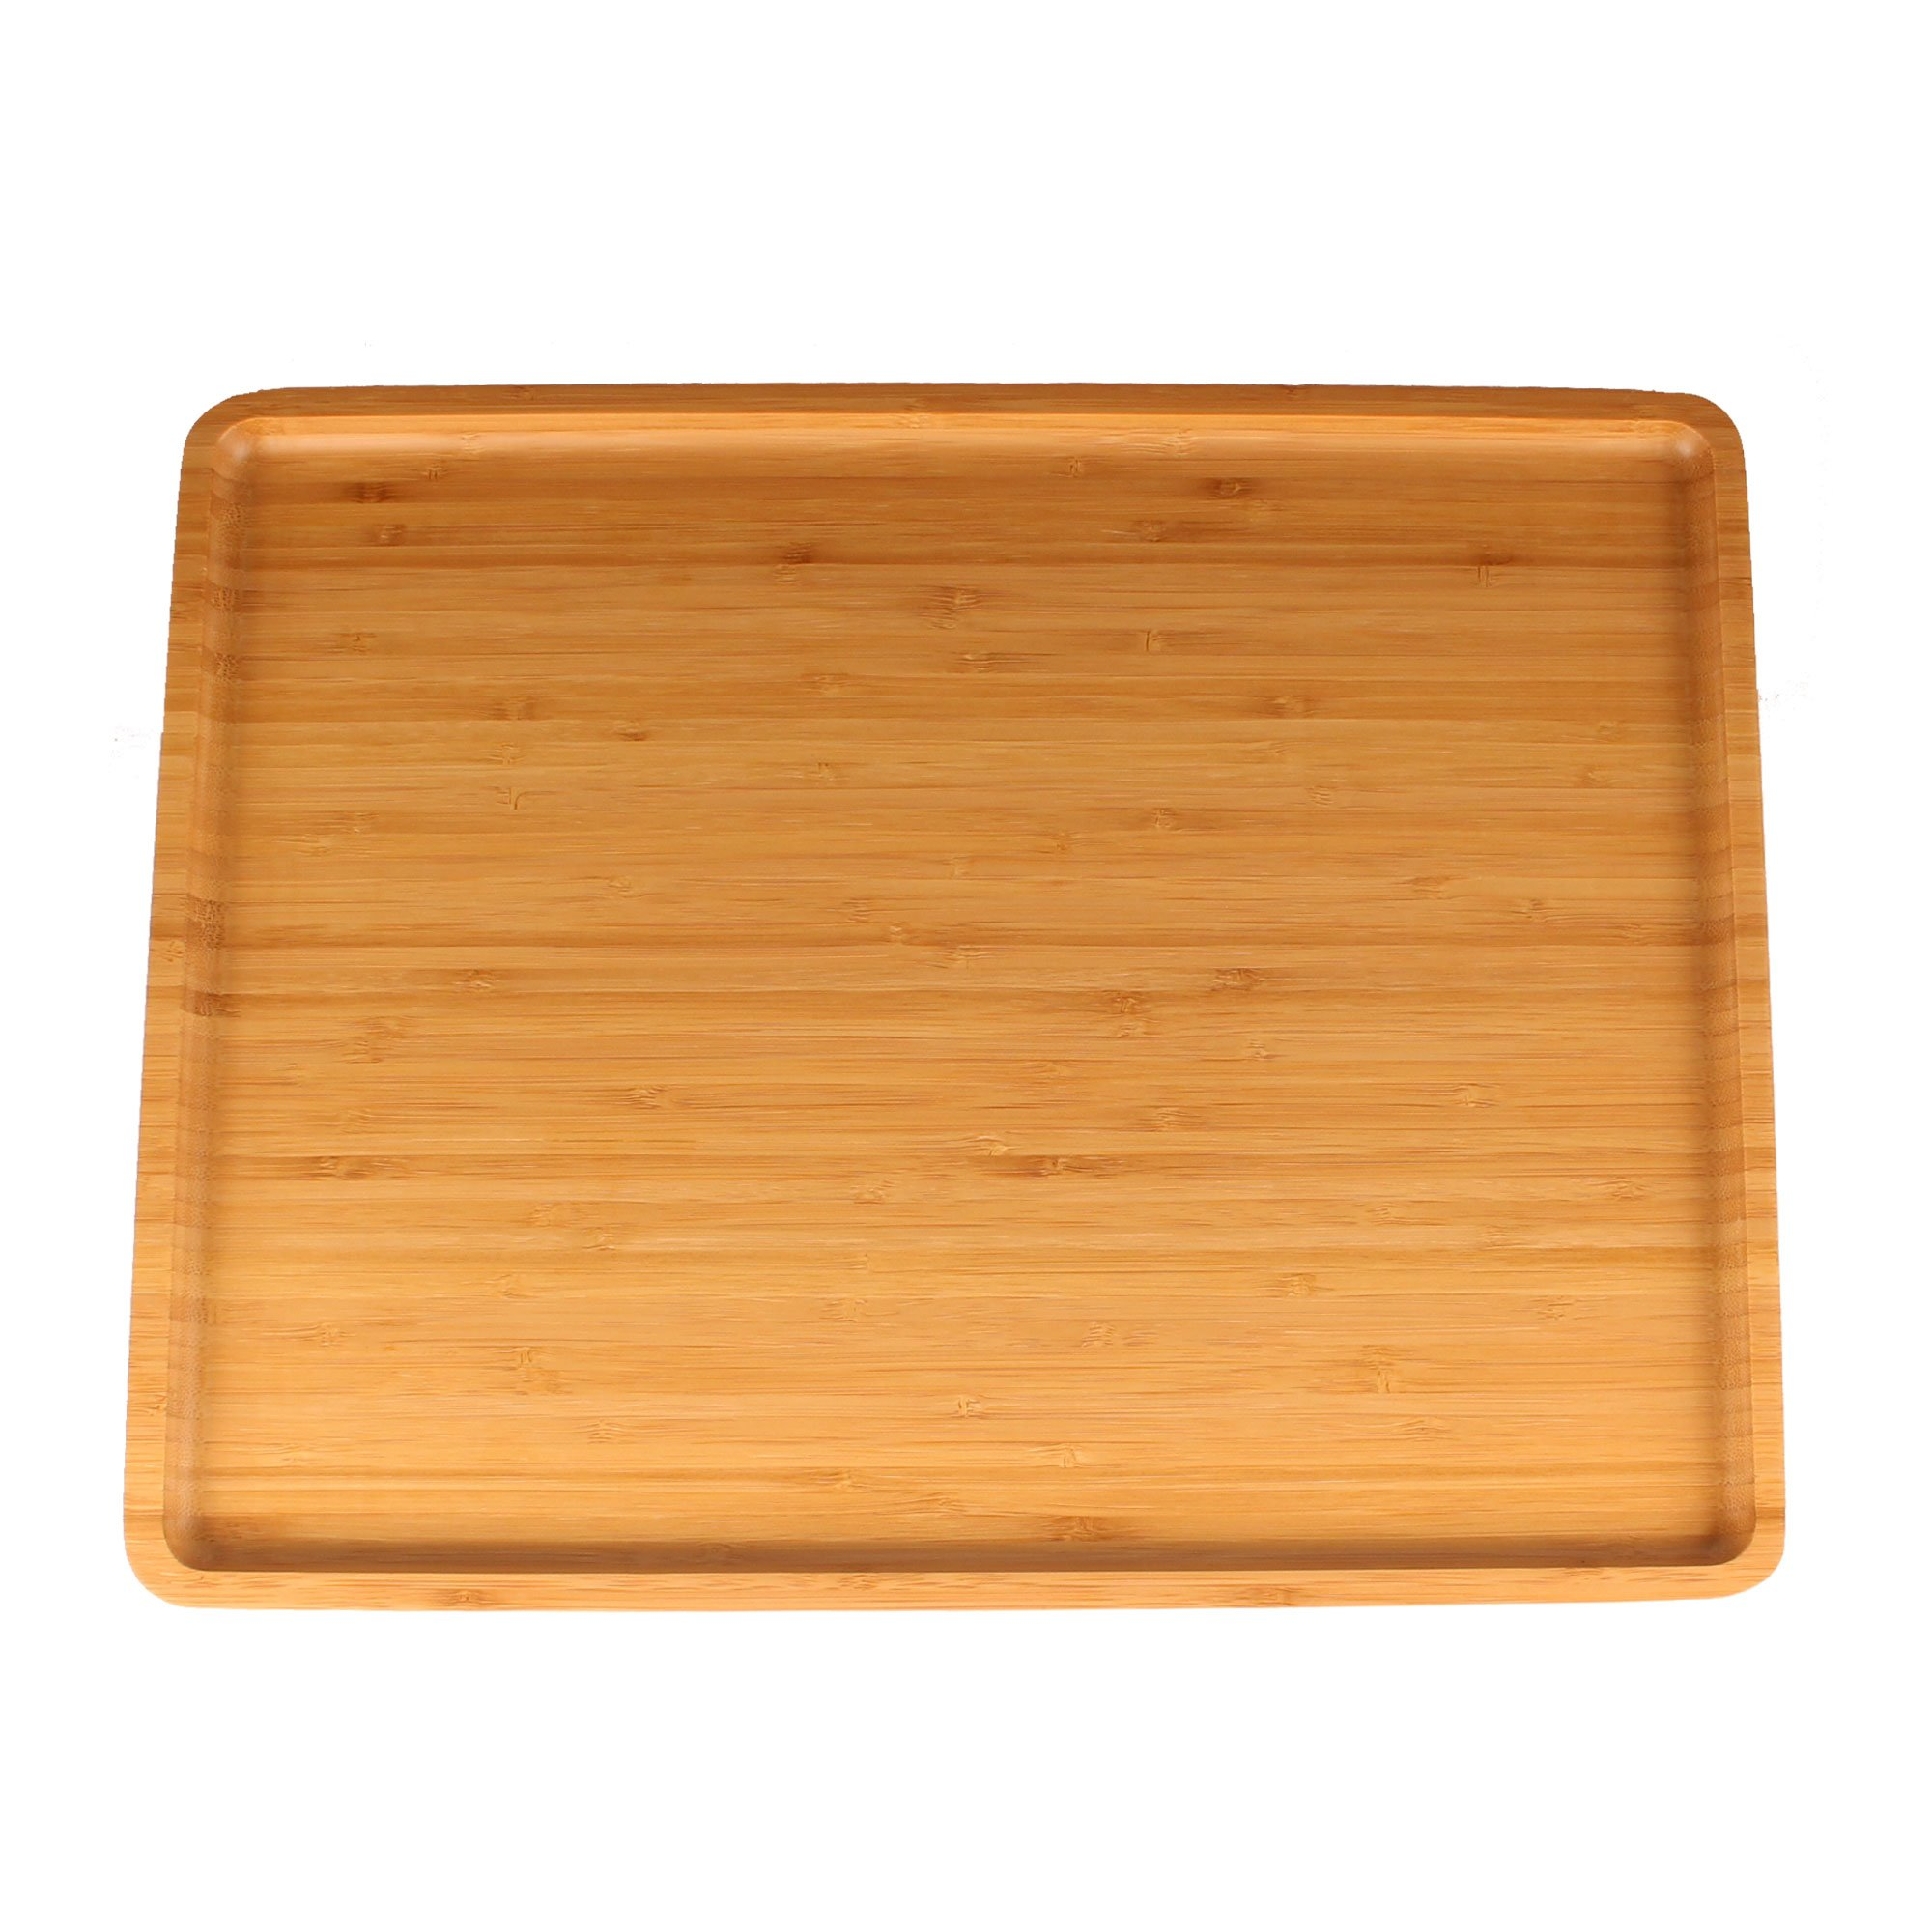 Organic Bamboo Serving Tray - 17''x13''x0.75'' - Rounded Edges- 10 Pieces